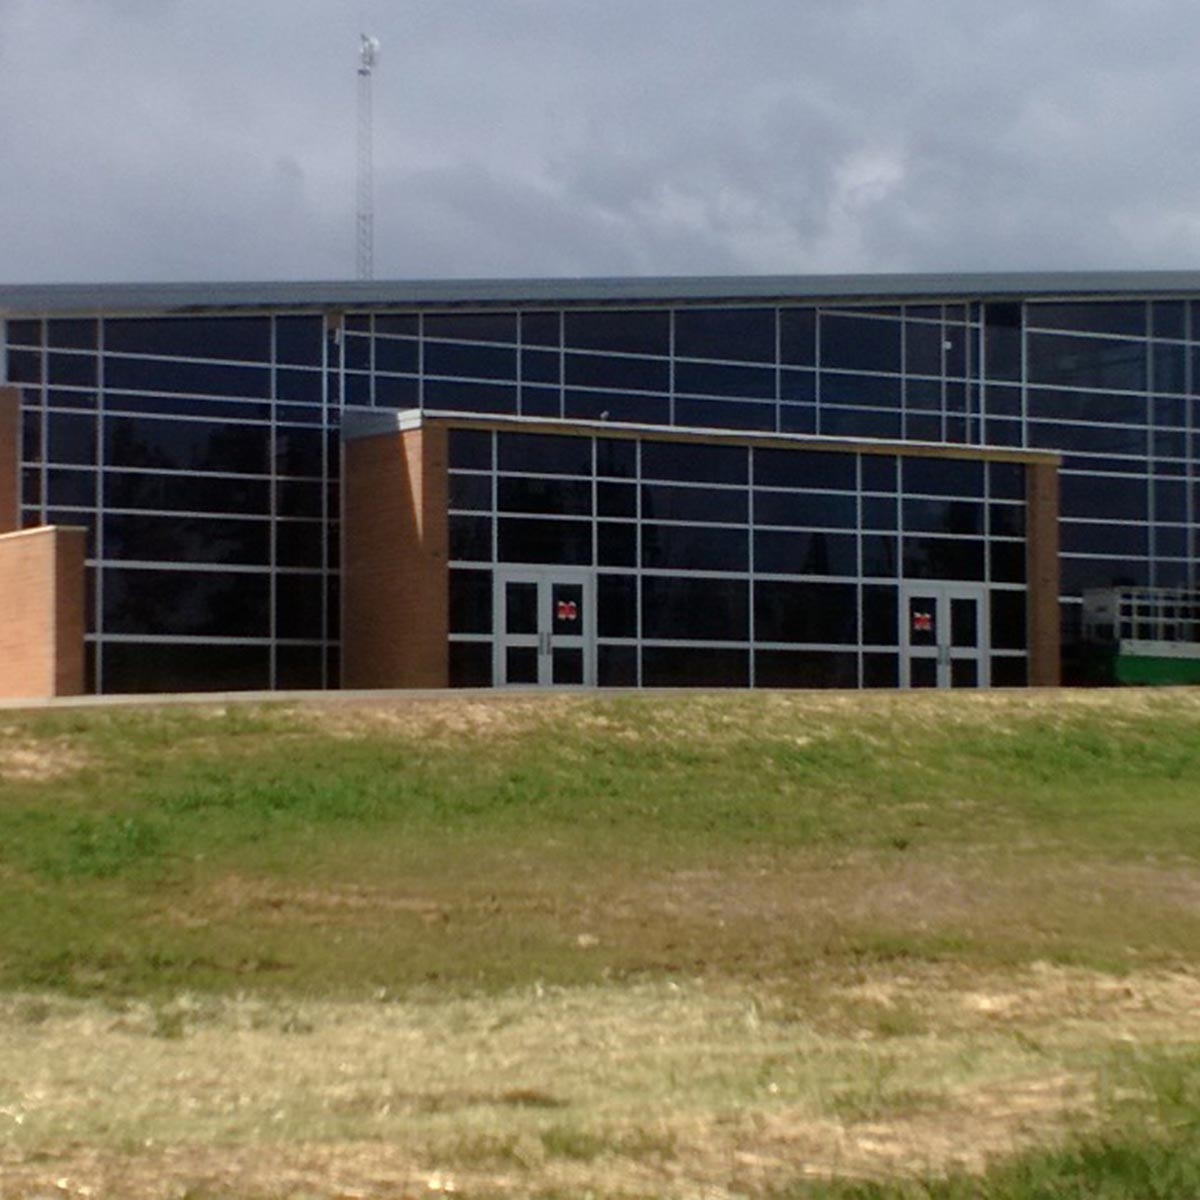 Belton-Honea Path High School